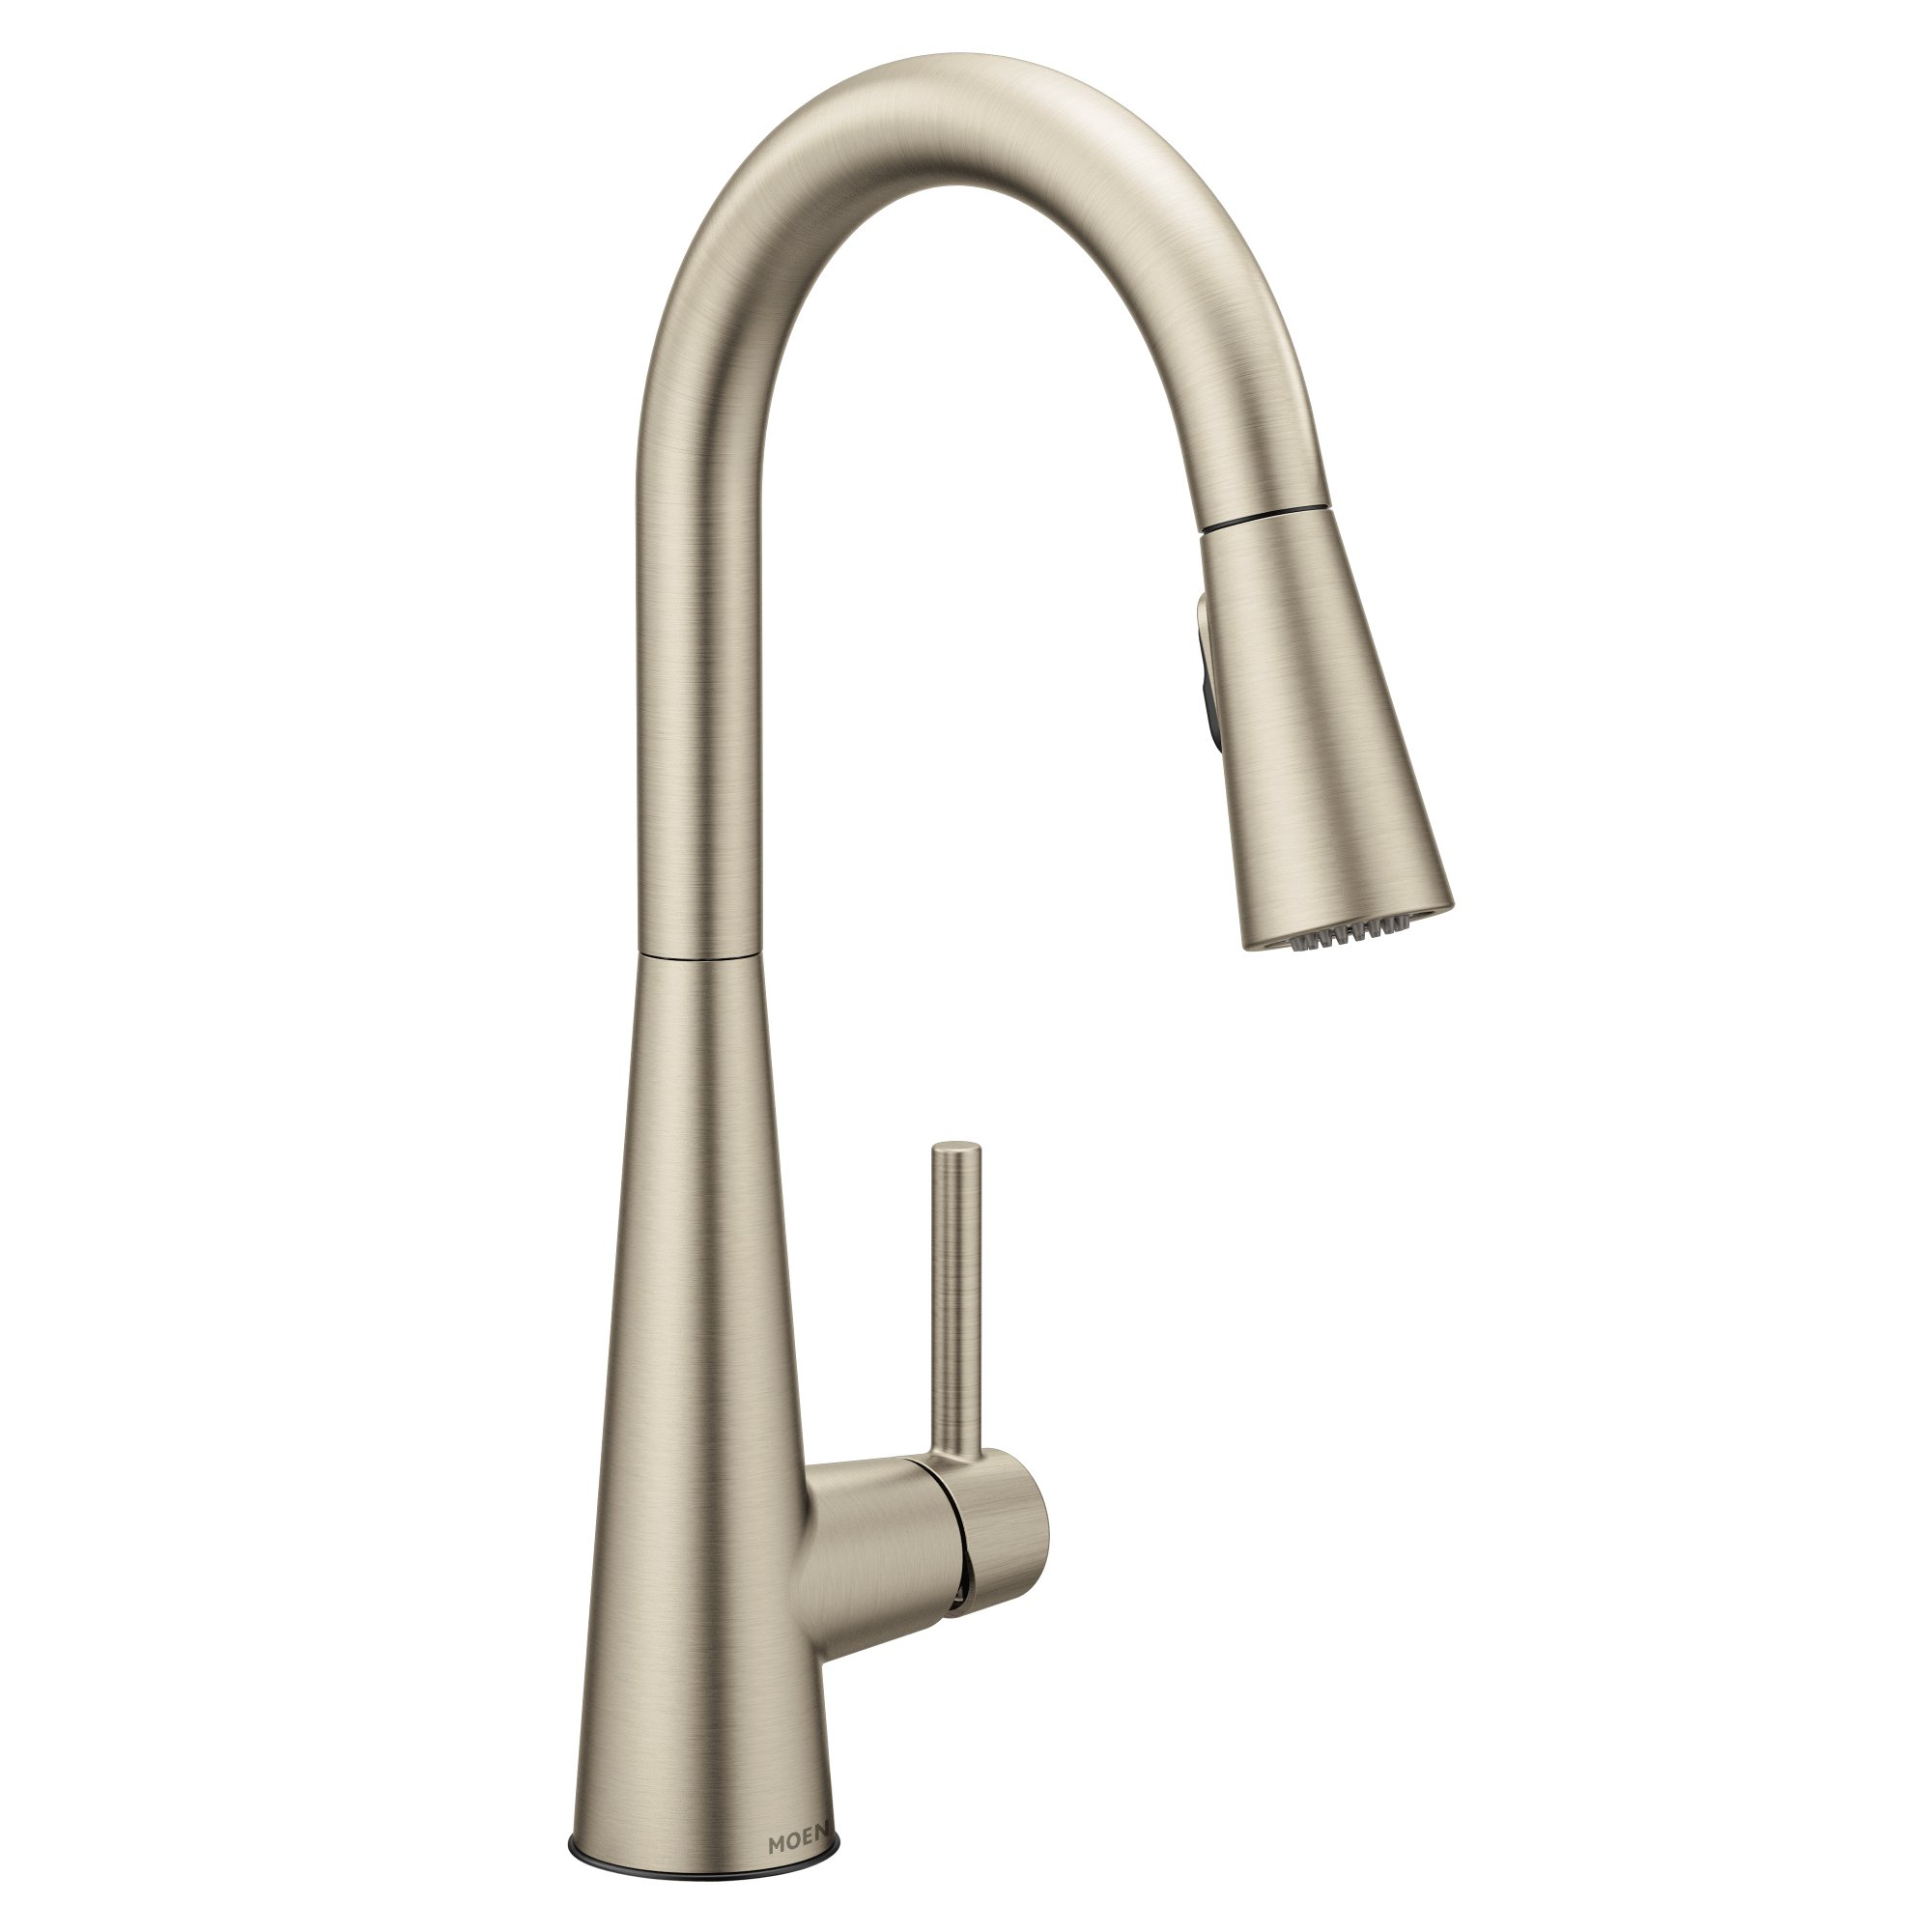 Moen 7864SRS Sleek One-Handle High Arc Pulldown Kitchen Faucet Featuring Reflex (7864SRS), Spot Resist Stainless